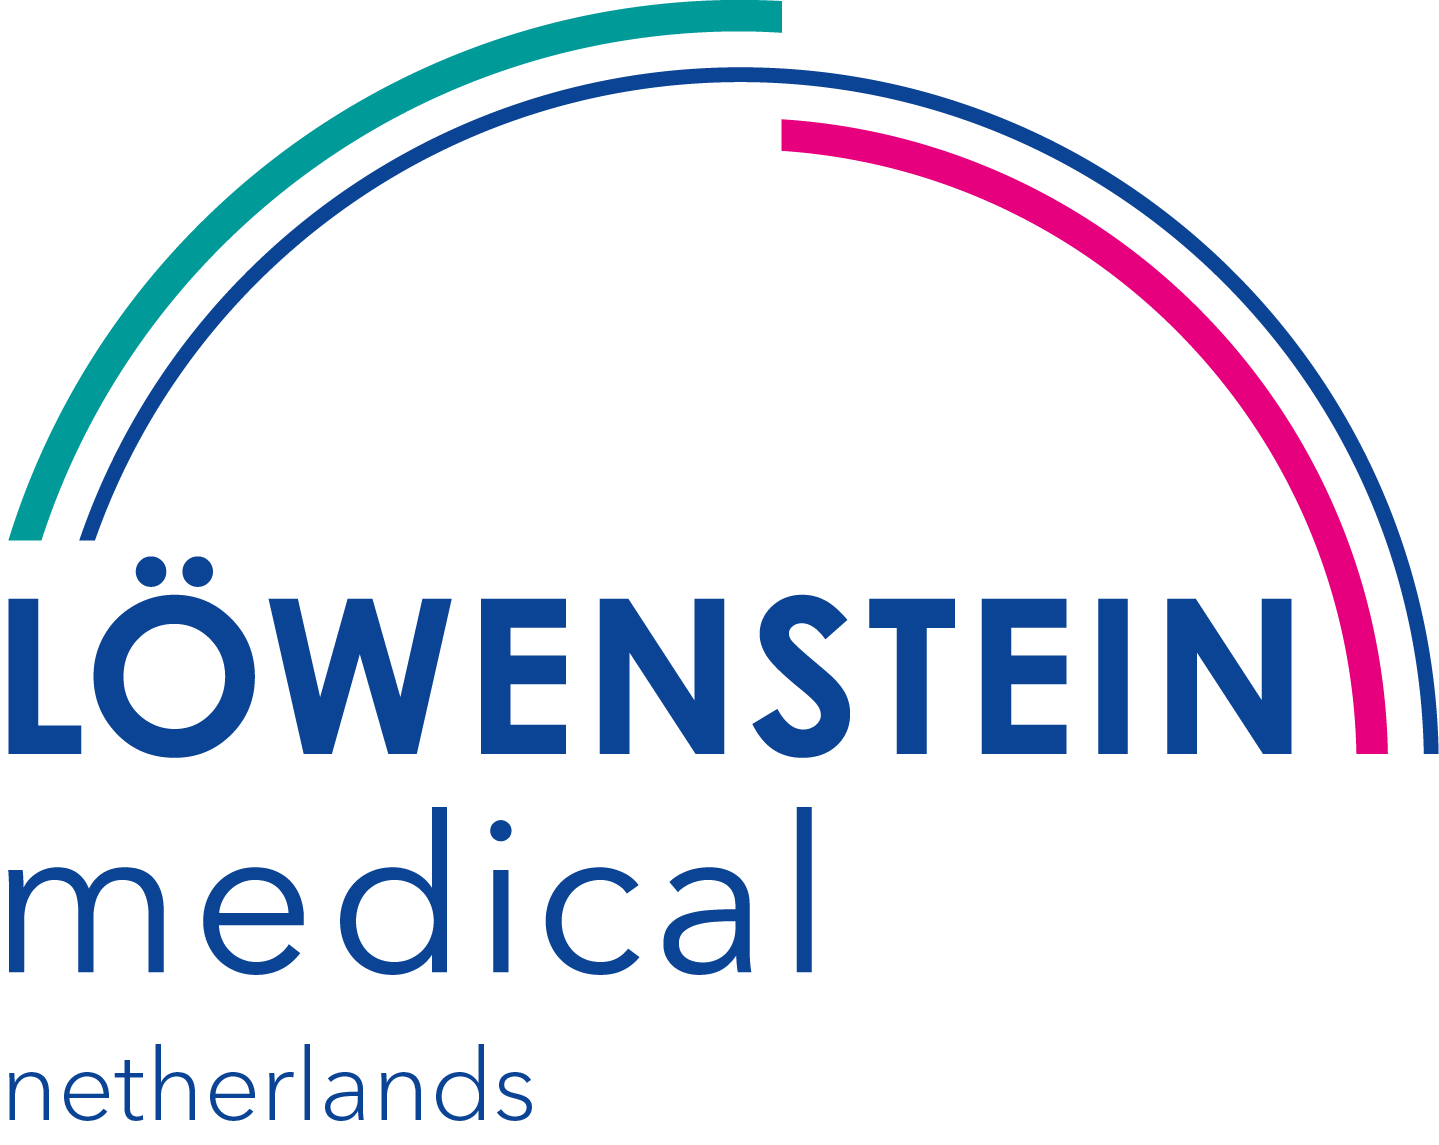 HUL_Logo_Medical_Blau_Netherlands_0216